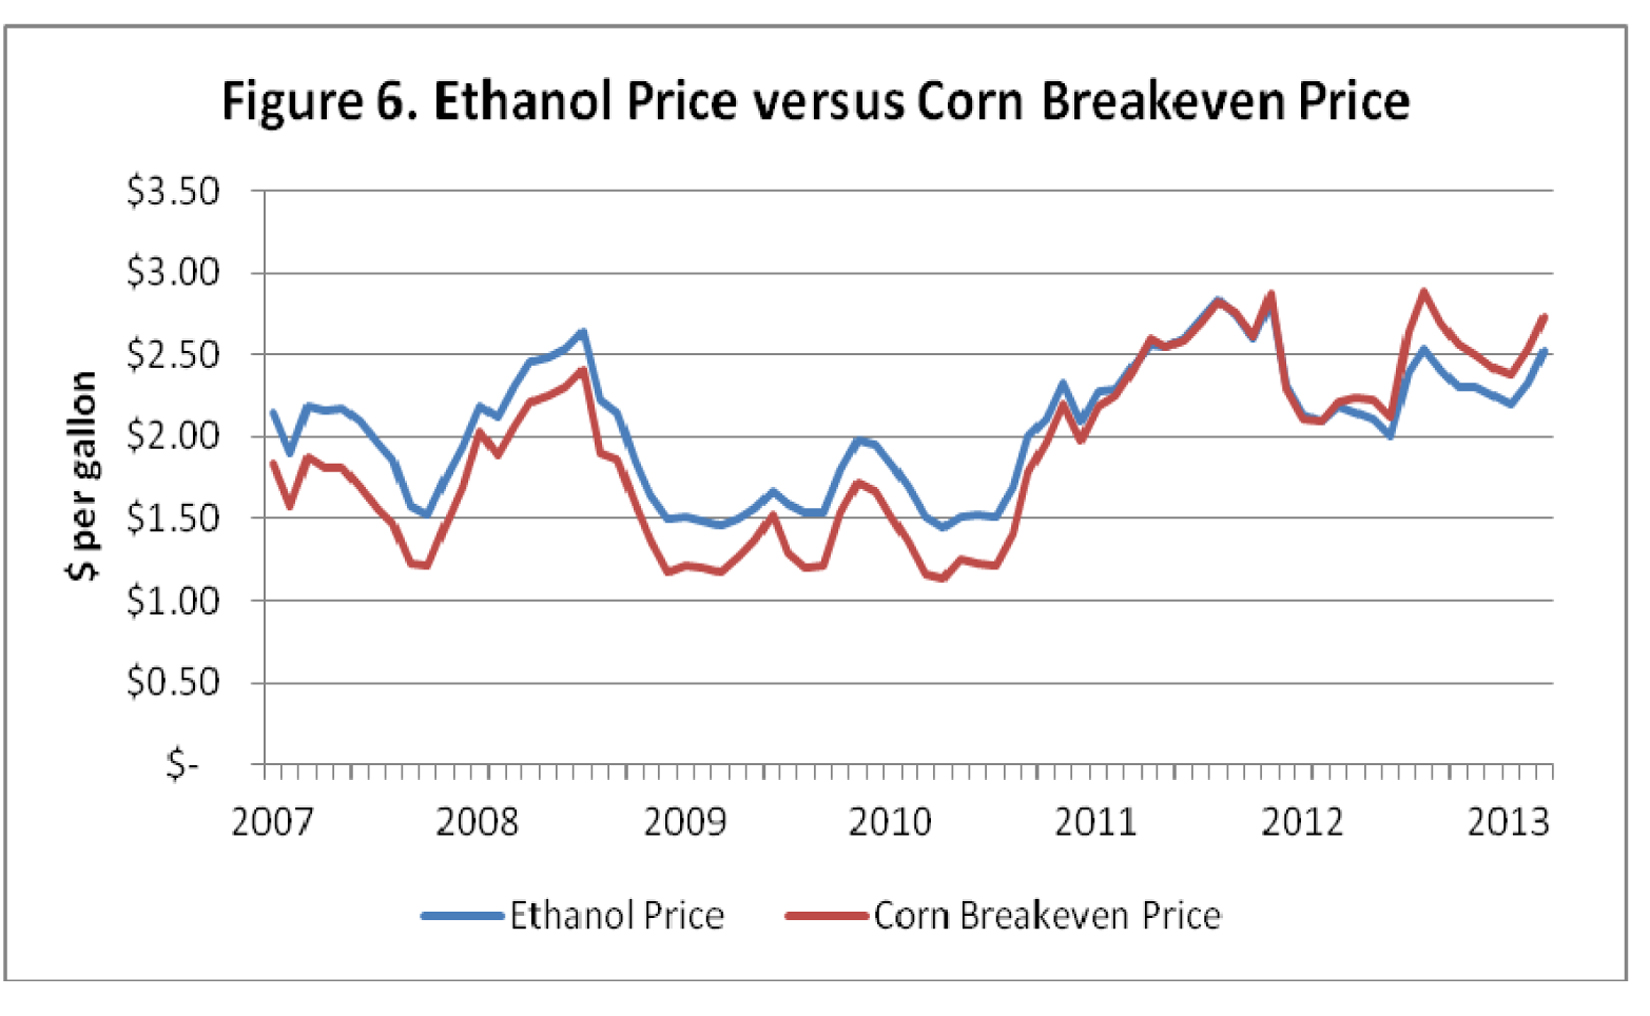 ethanol price versus corn breakeven price